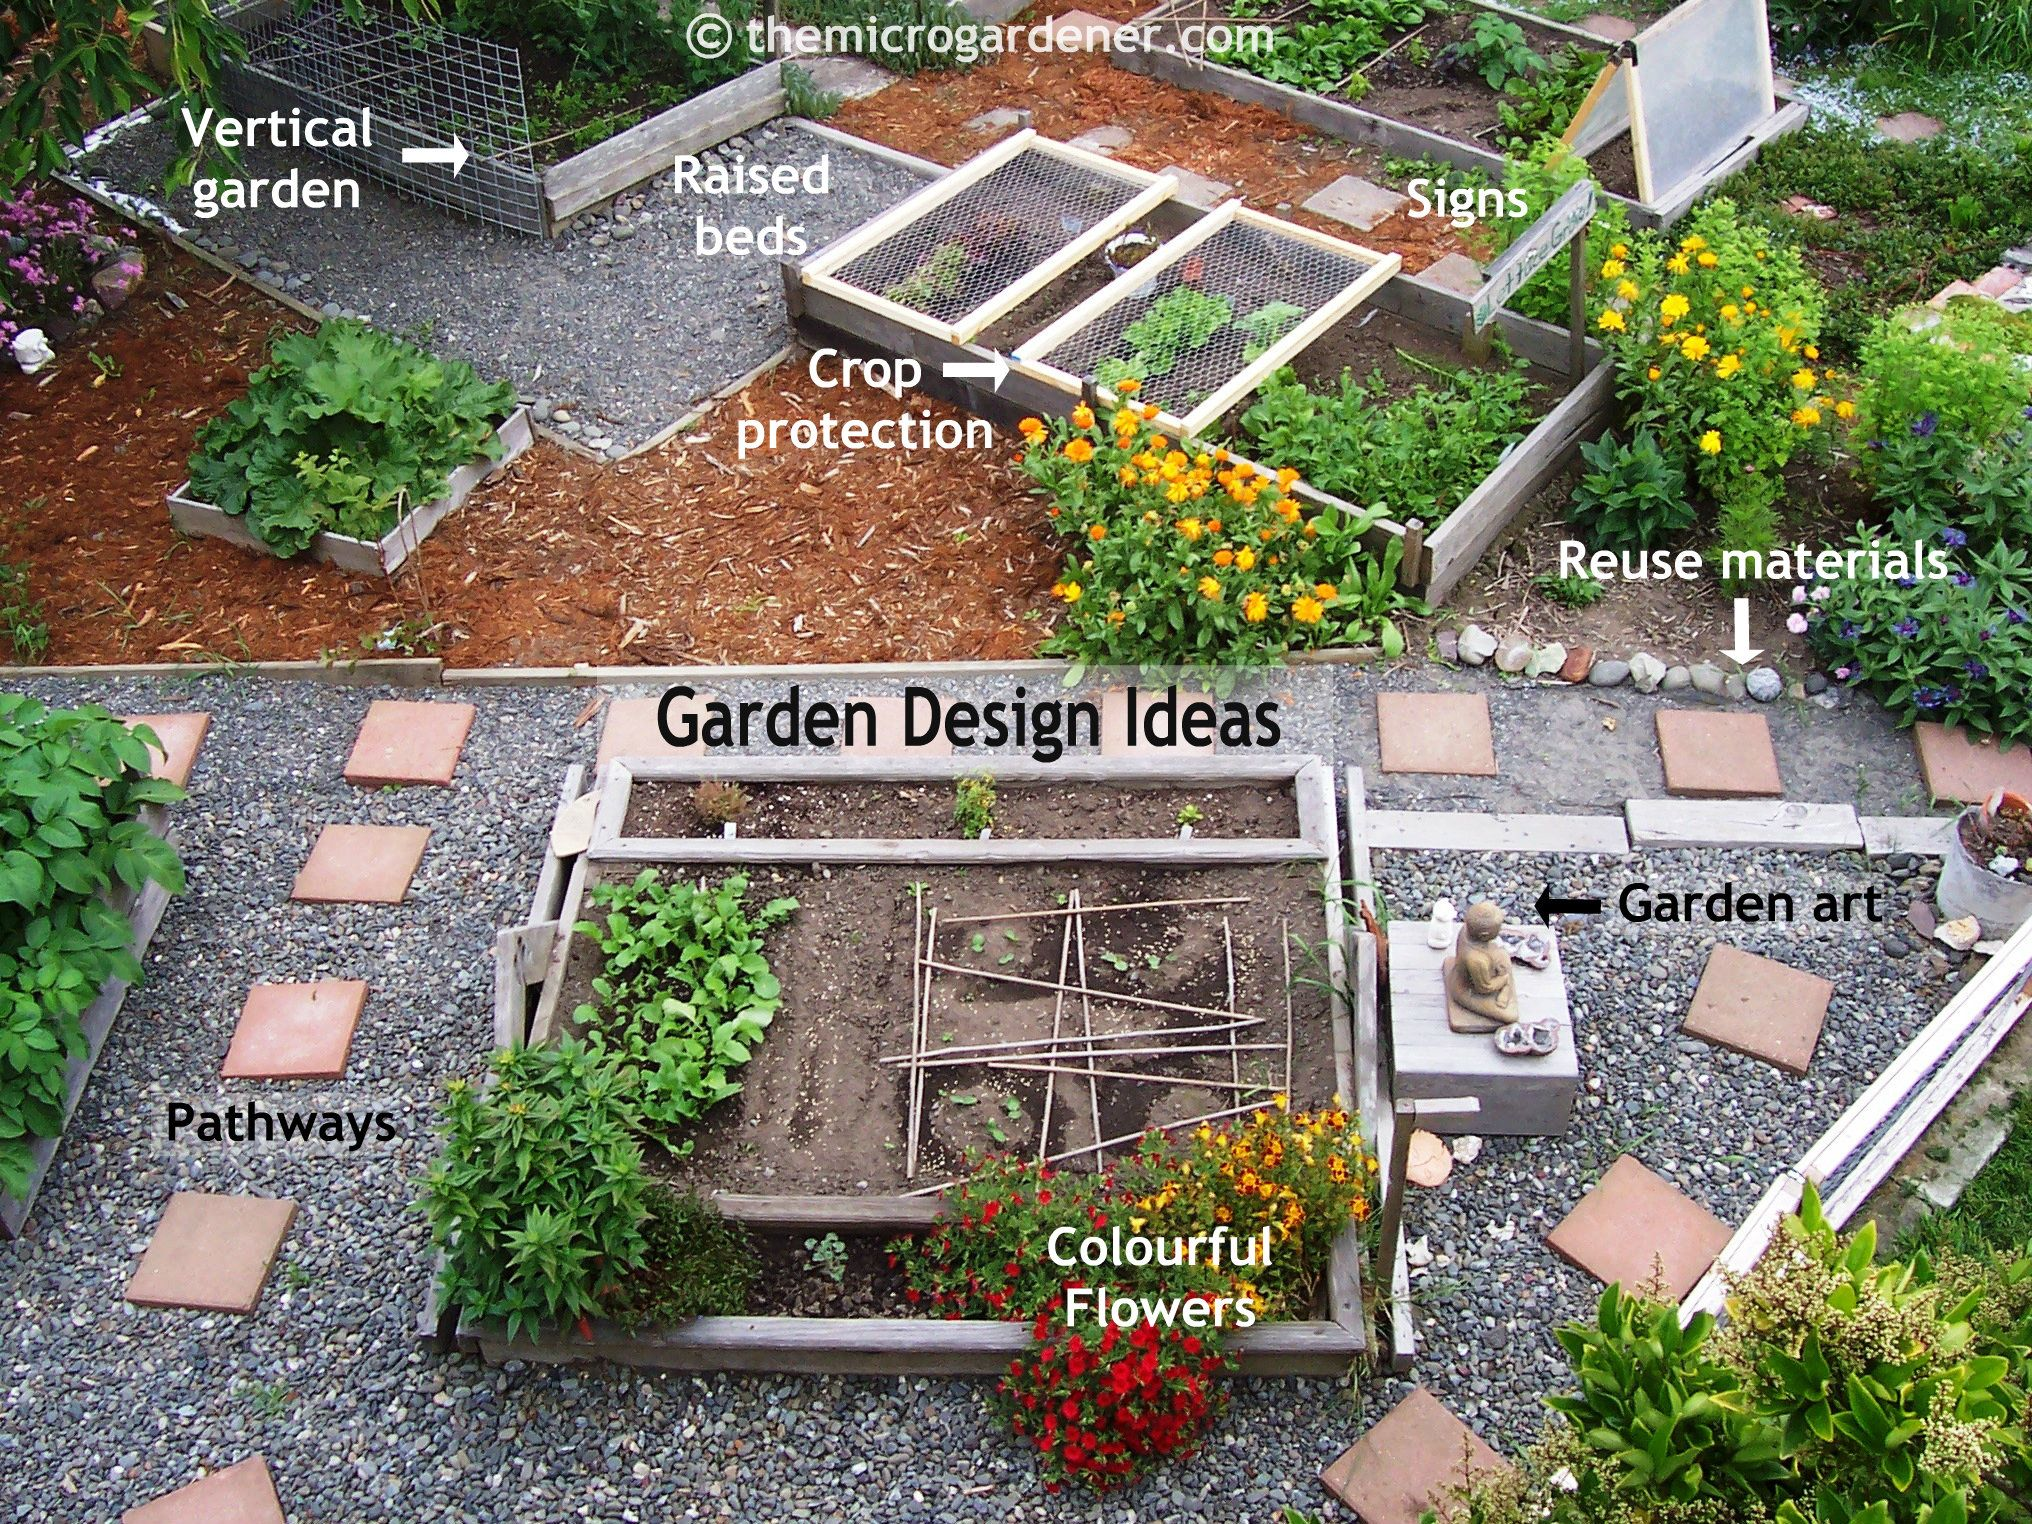 Small garden design ideas on pinterest vertical gardens for Backyard design plans